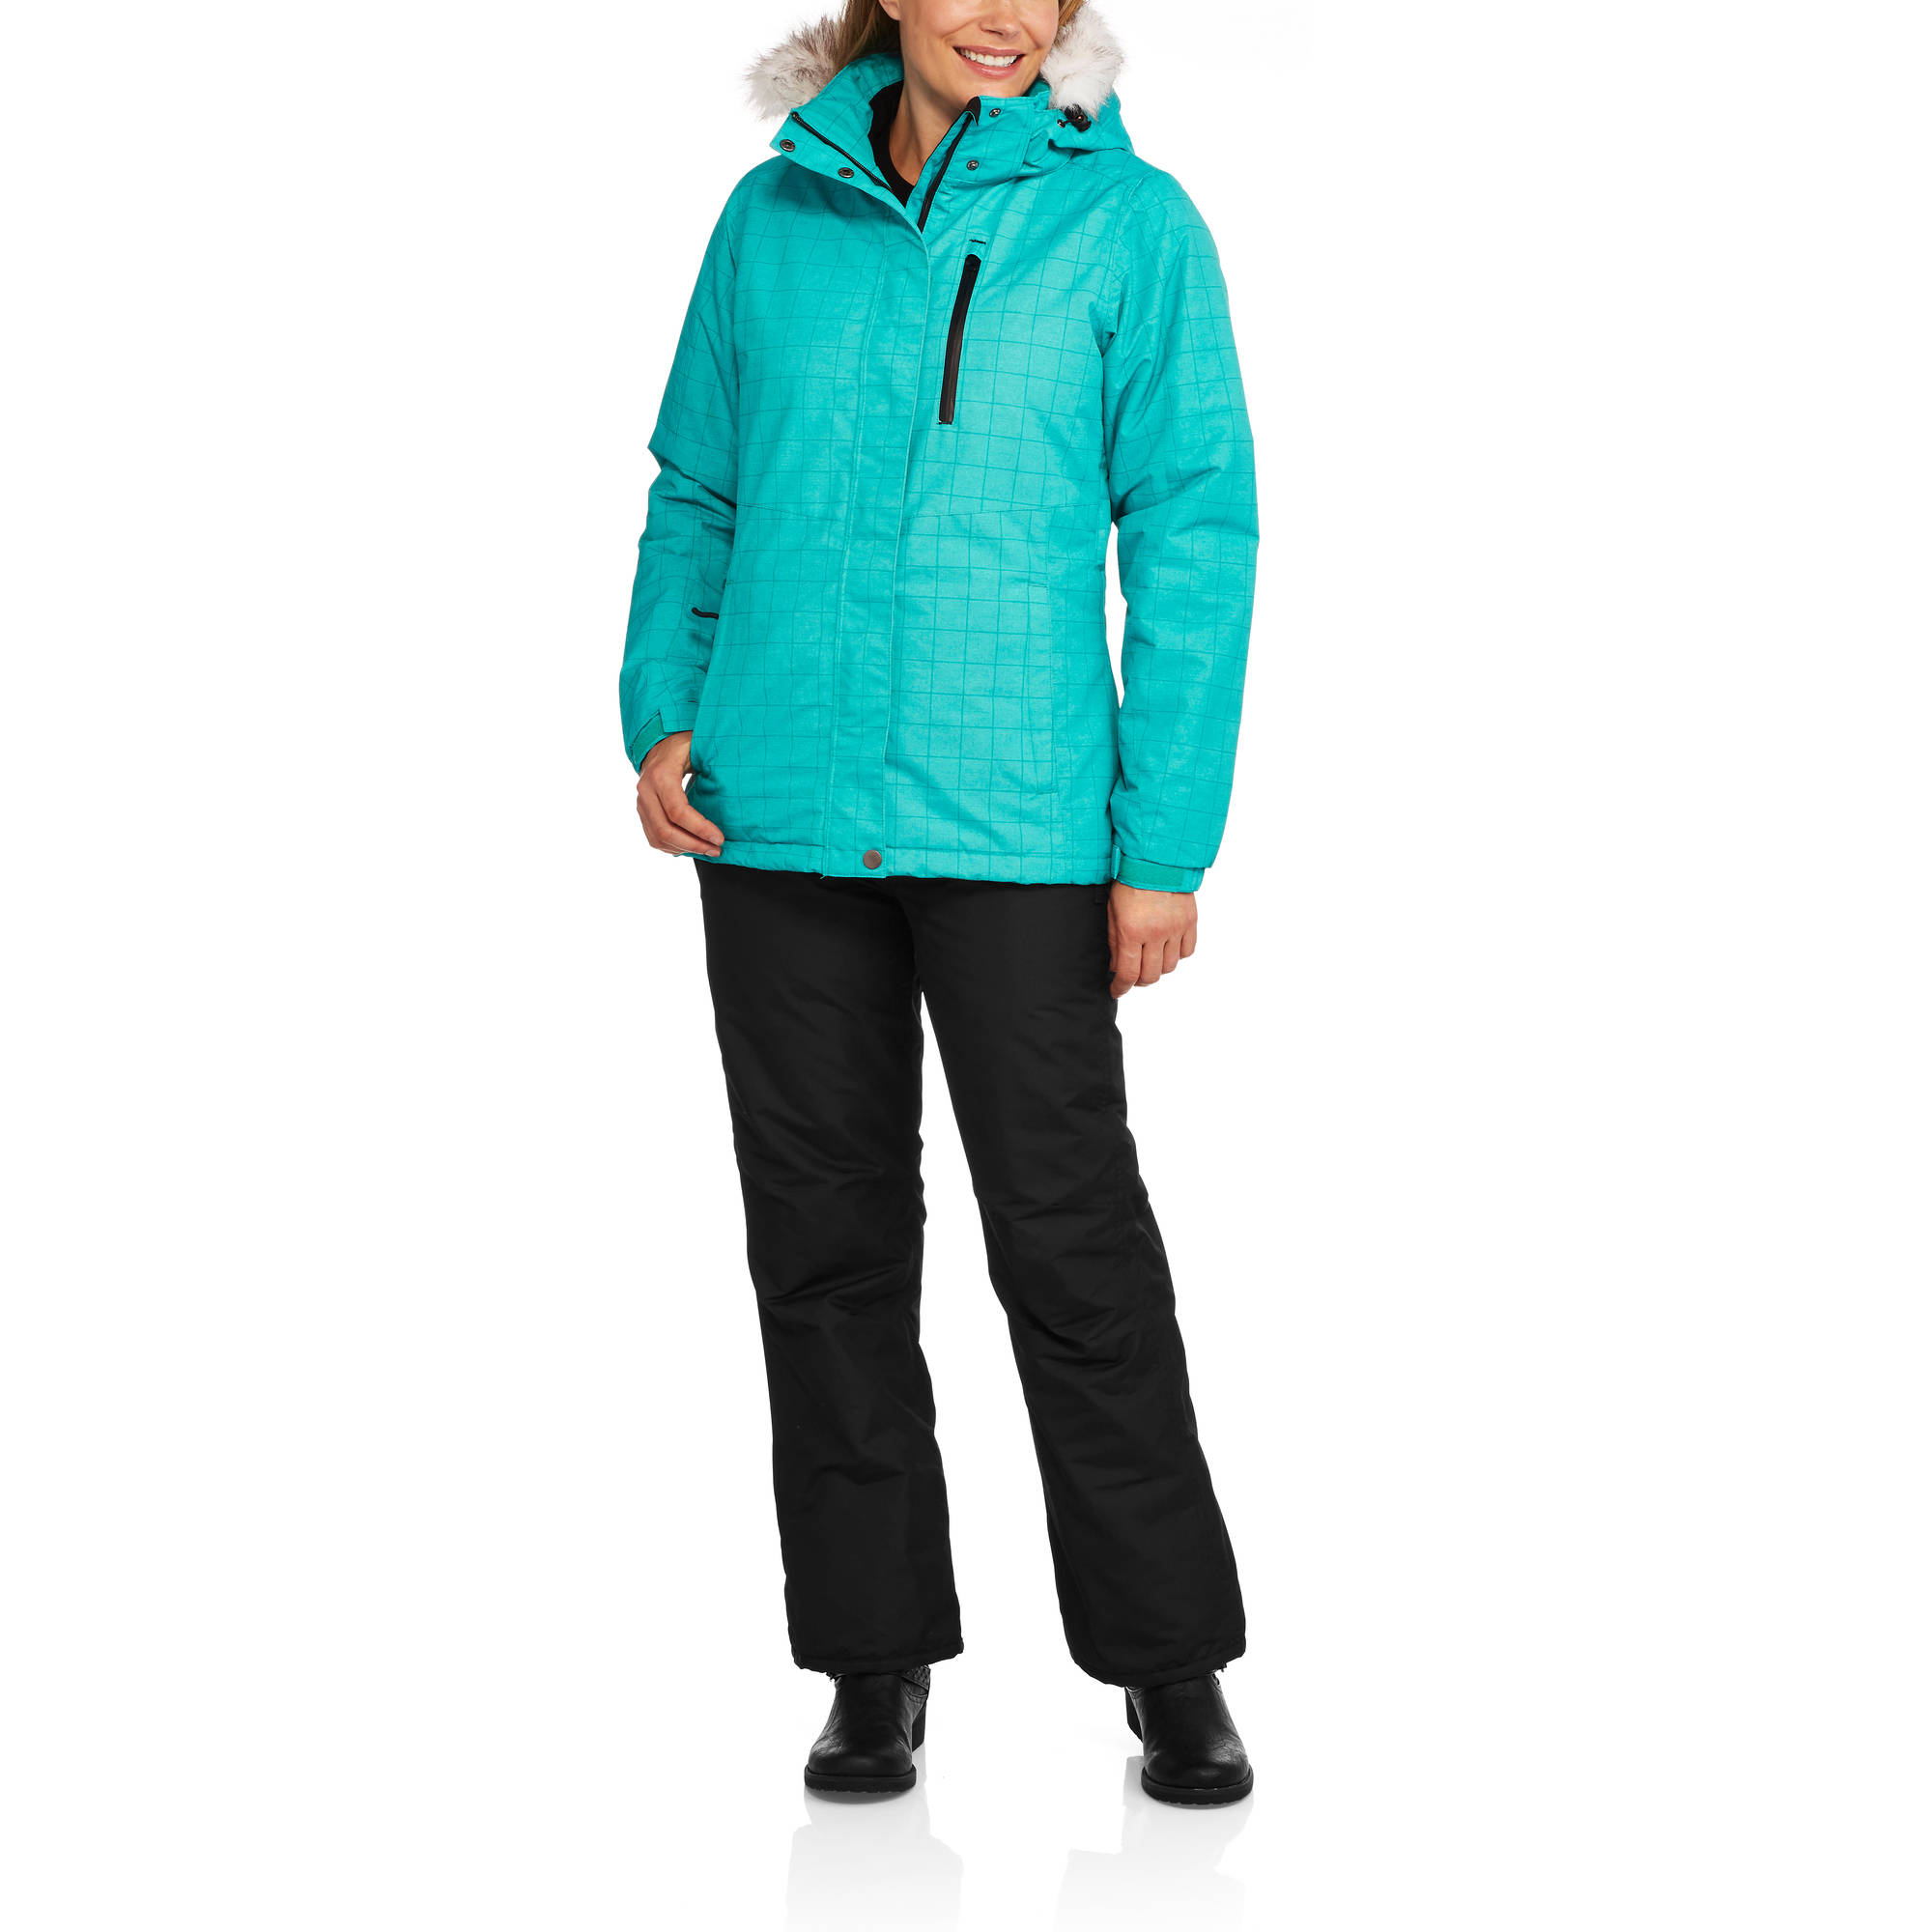 Iceburg Women's Insulated Snow Ski/Snowboarding Set — Complete With Ski Pants & Ski Jacket